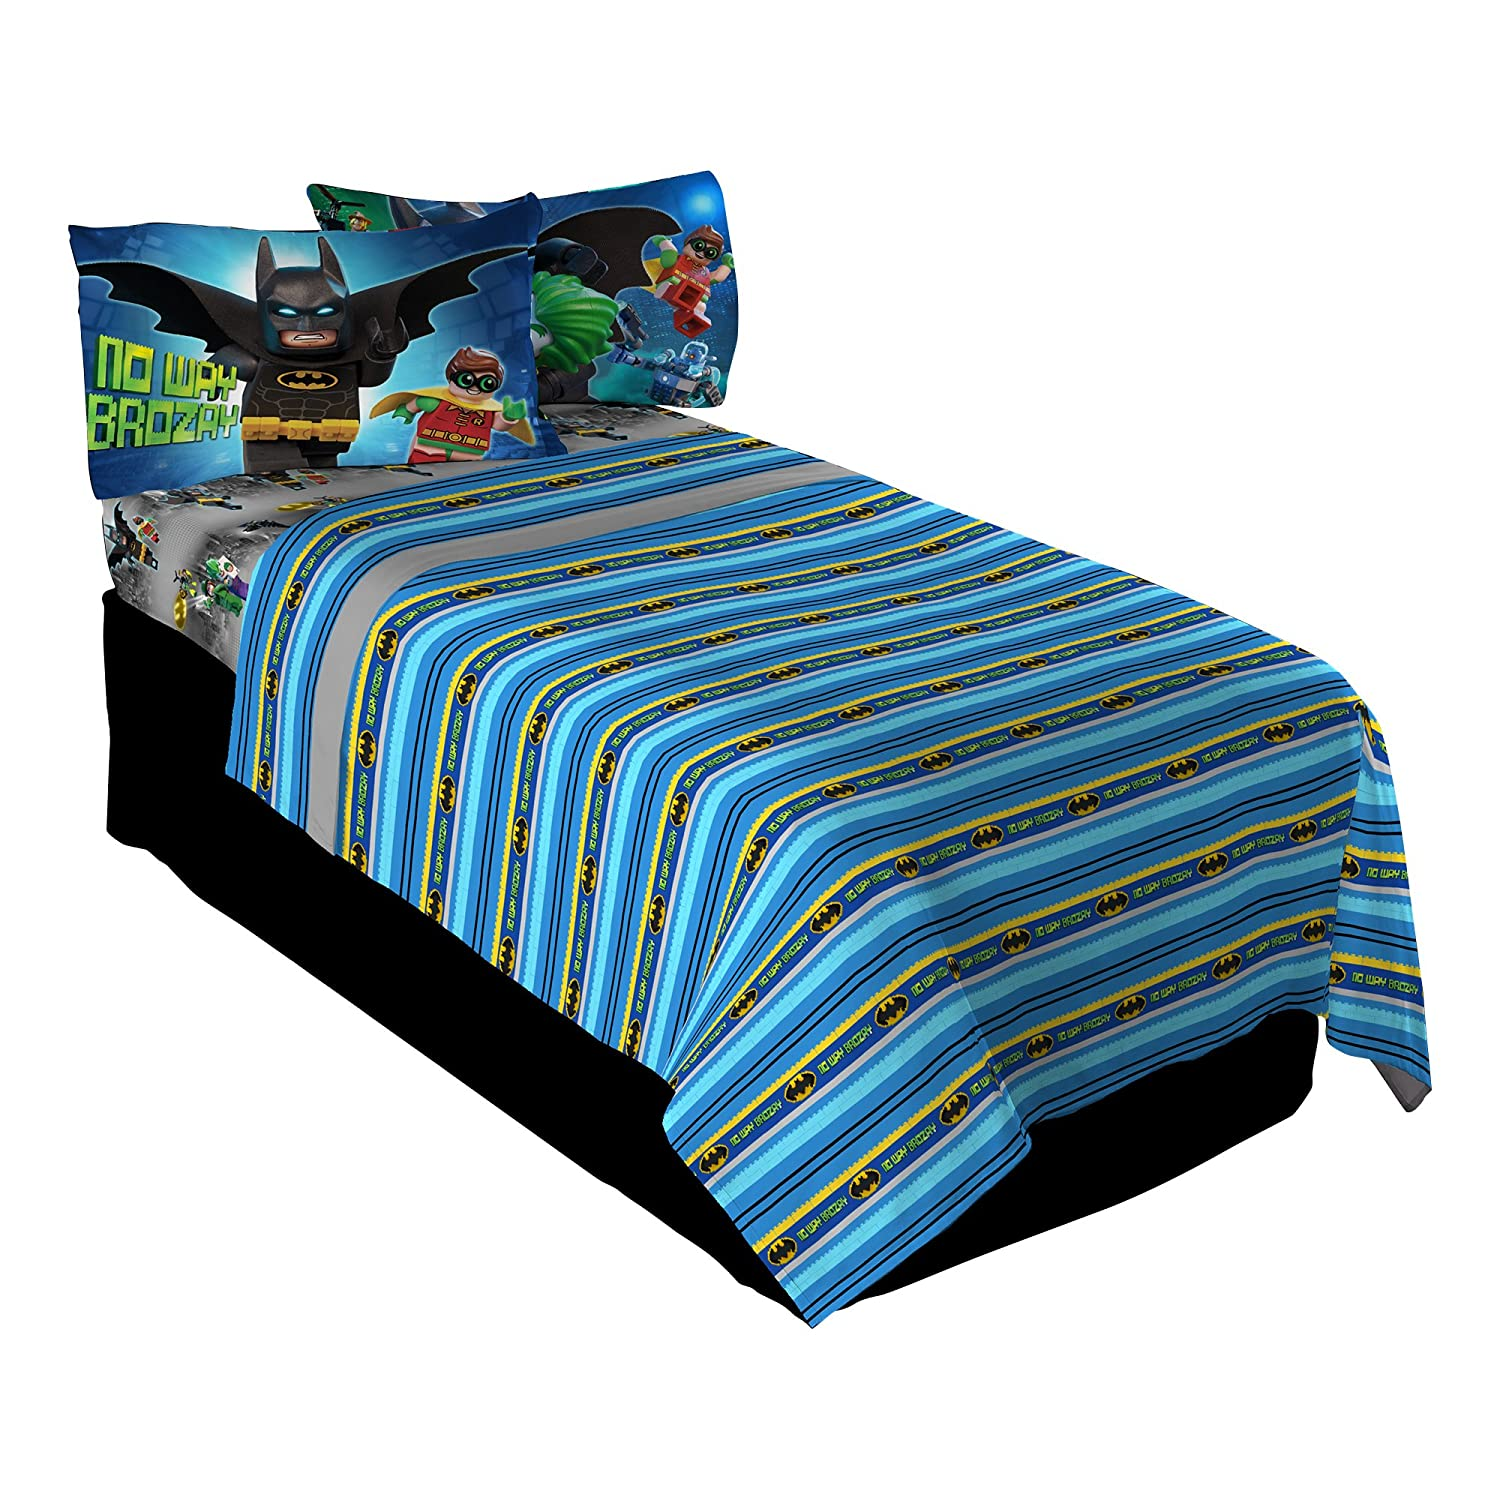 Lego Kids Bedding Sets with more – Ease Bedding with Style